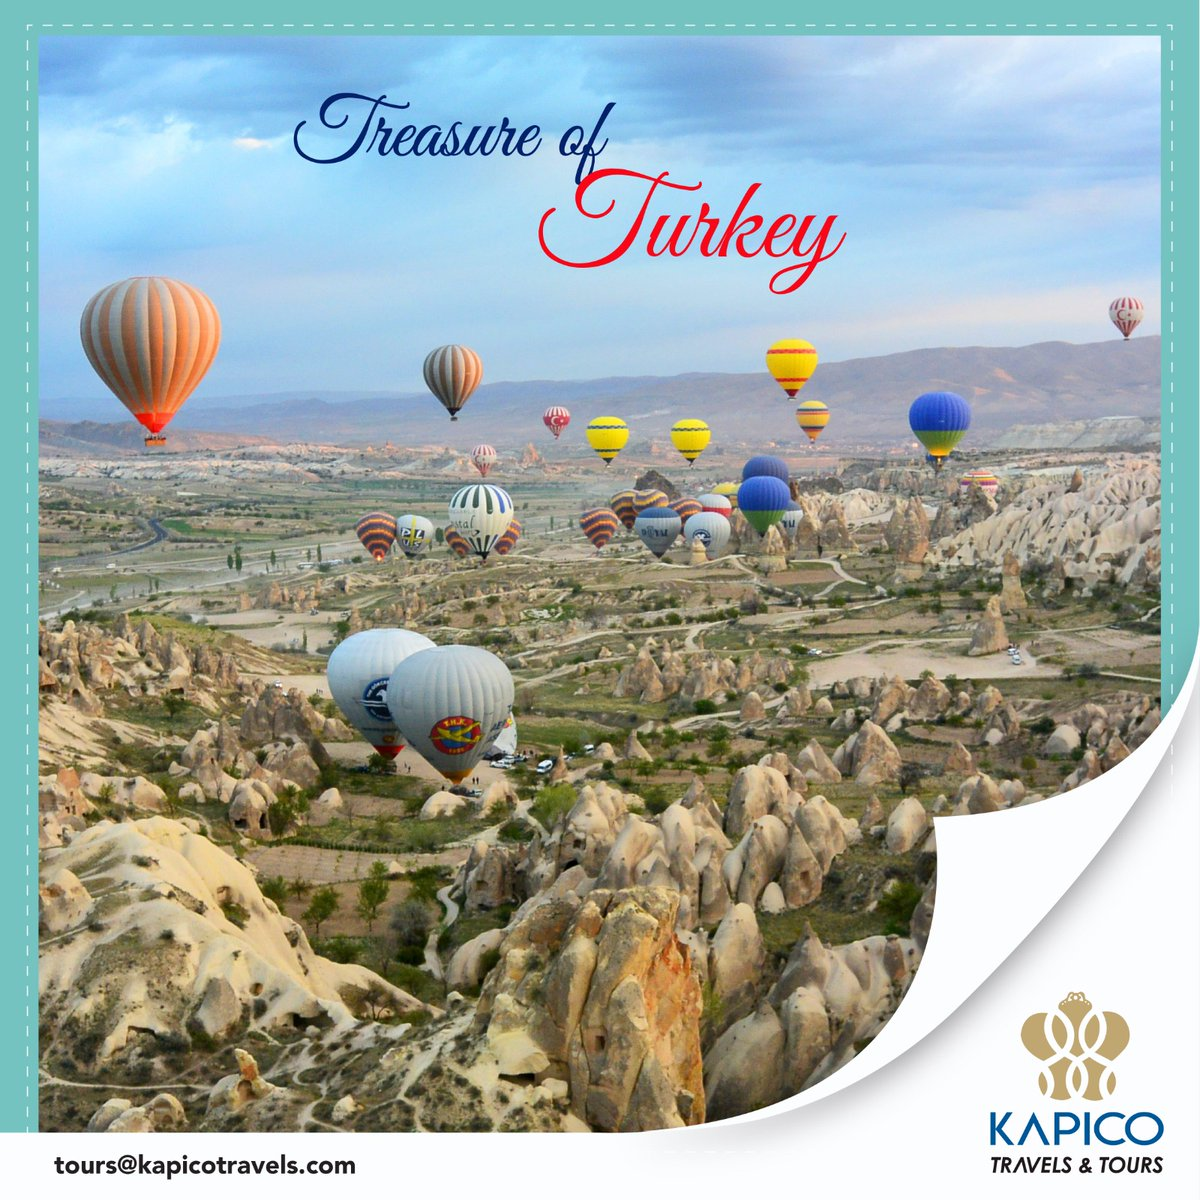 Turkey: Welcomes Tourists and is ready for Tourism.  #Turkey has officially reopened its borders to all #tourists under normal #travel regulations.  #kapico #kapicotravels #tourism #travelagency #golater #turkeytourism #travelsafe #traveldestinations #beautifuldestinations https://t.co/hgtV1TwR9y